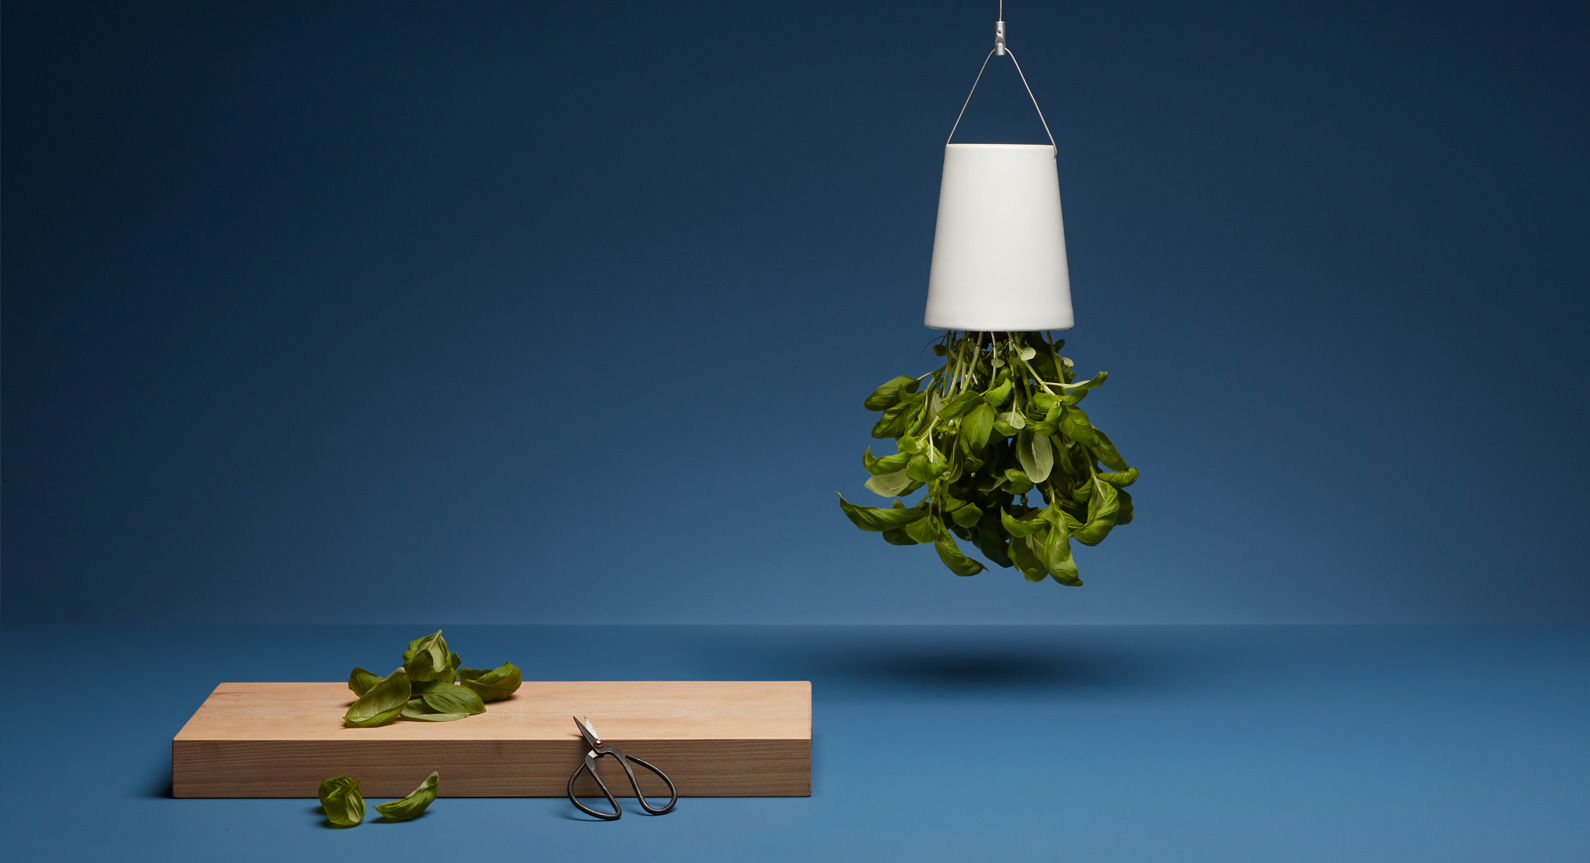 Introducing The Sky Planter From Boskke